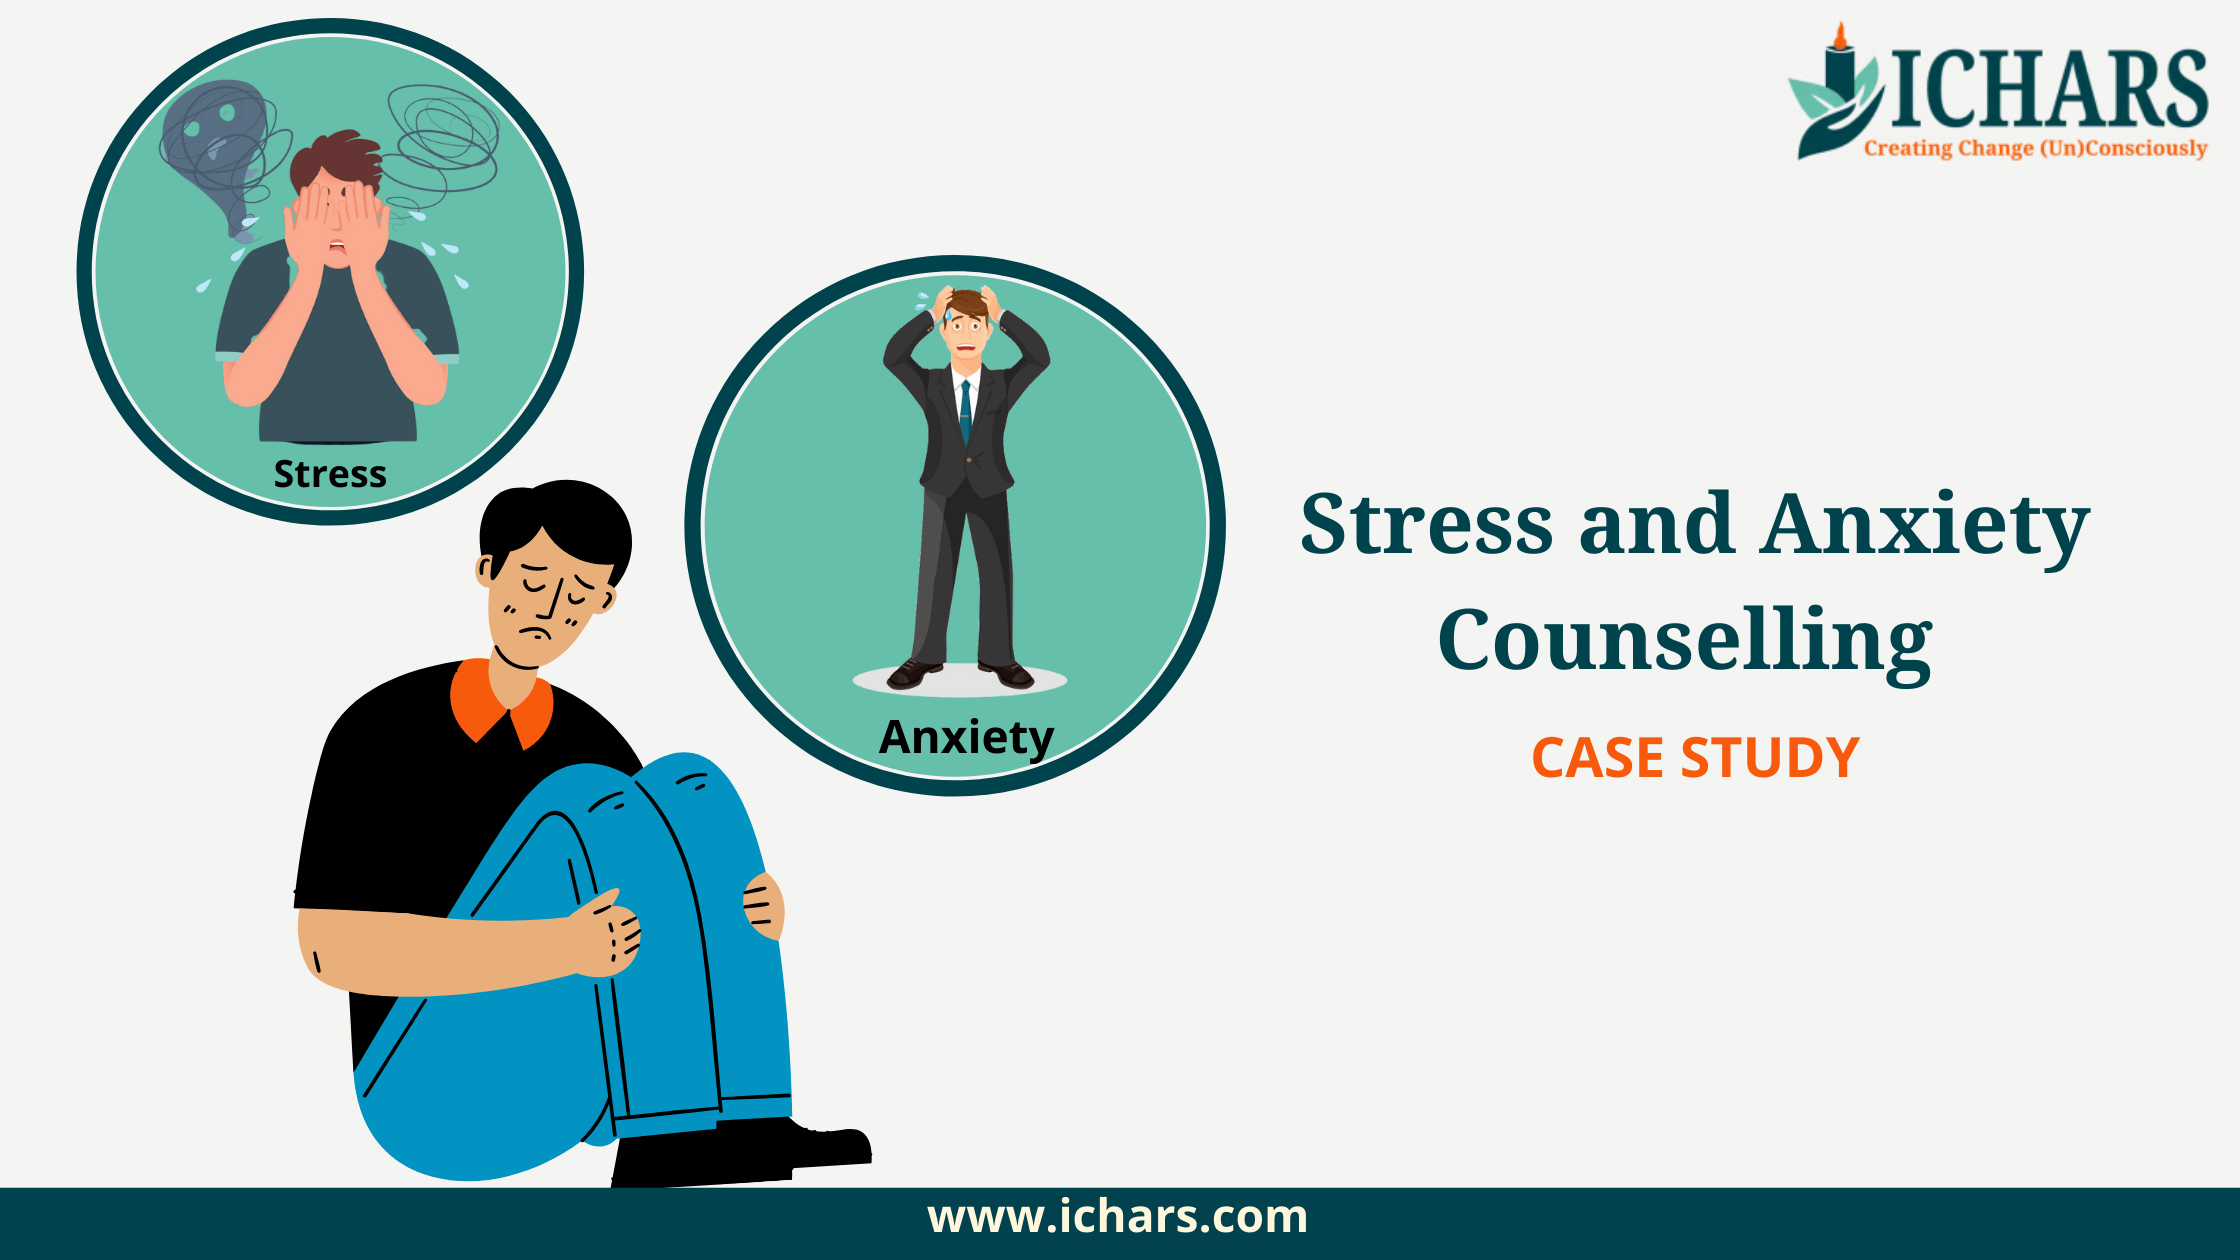 stress-and-anxiety-counselling-case-study